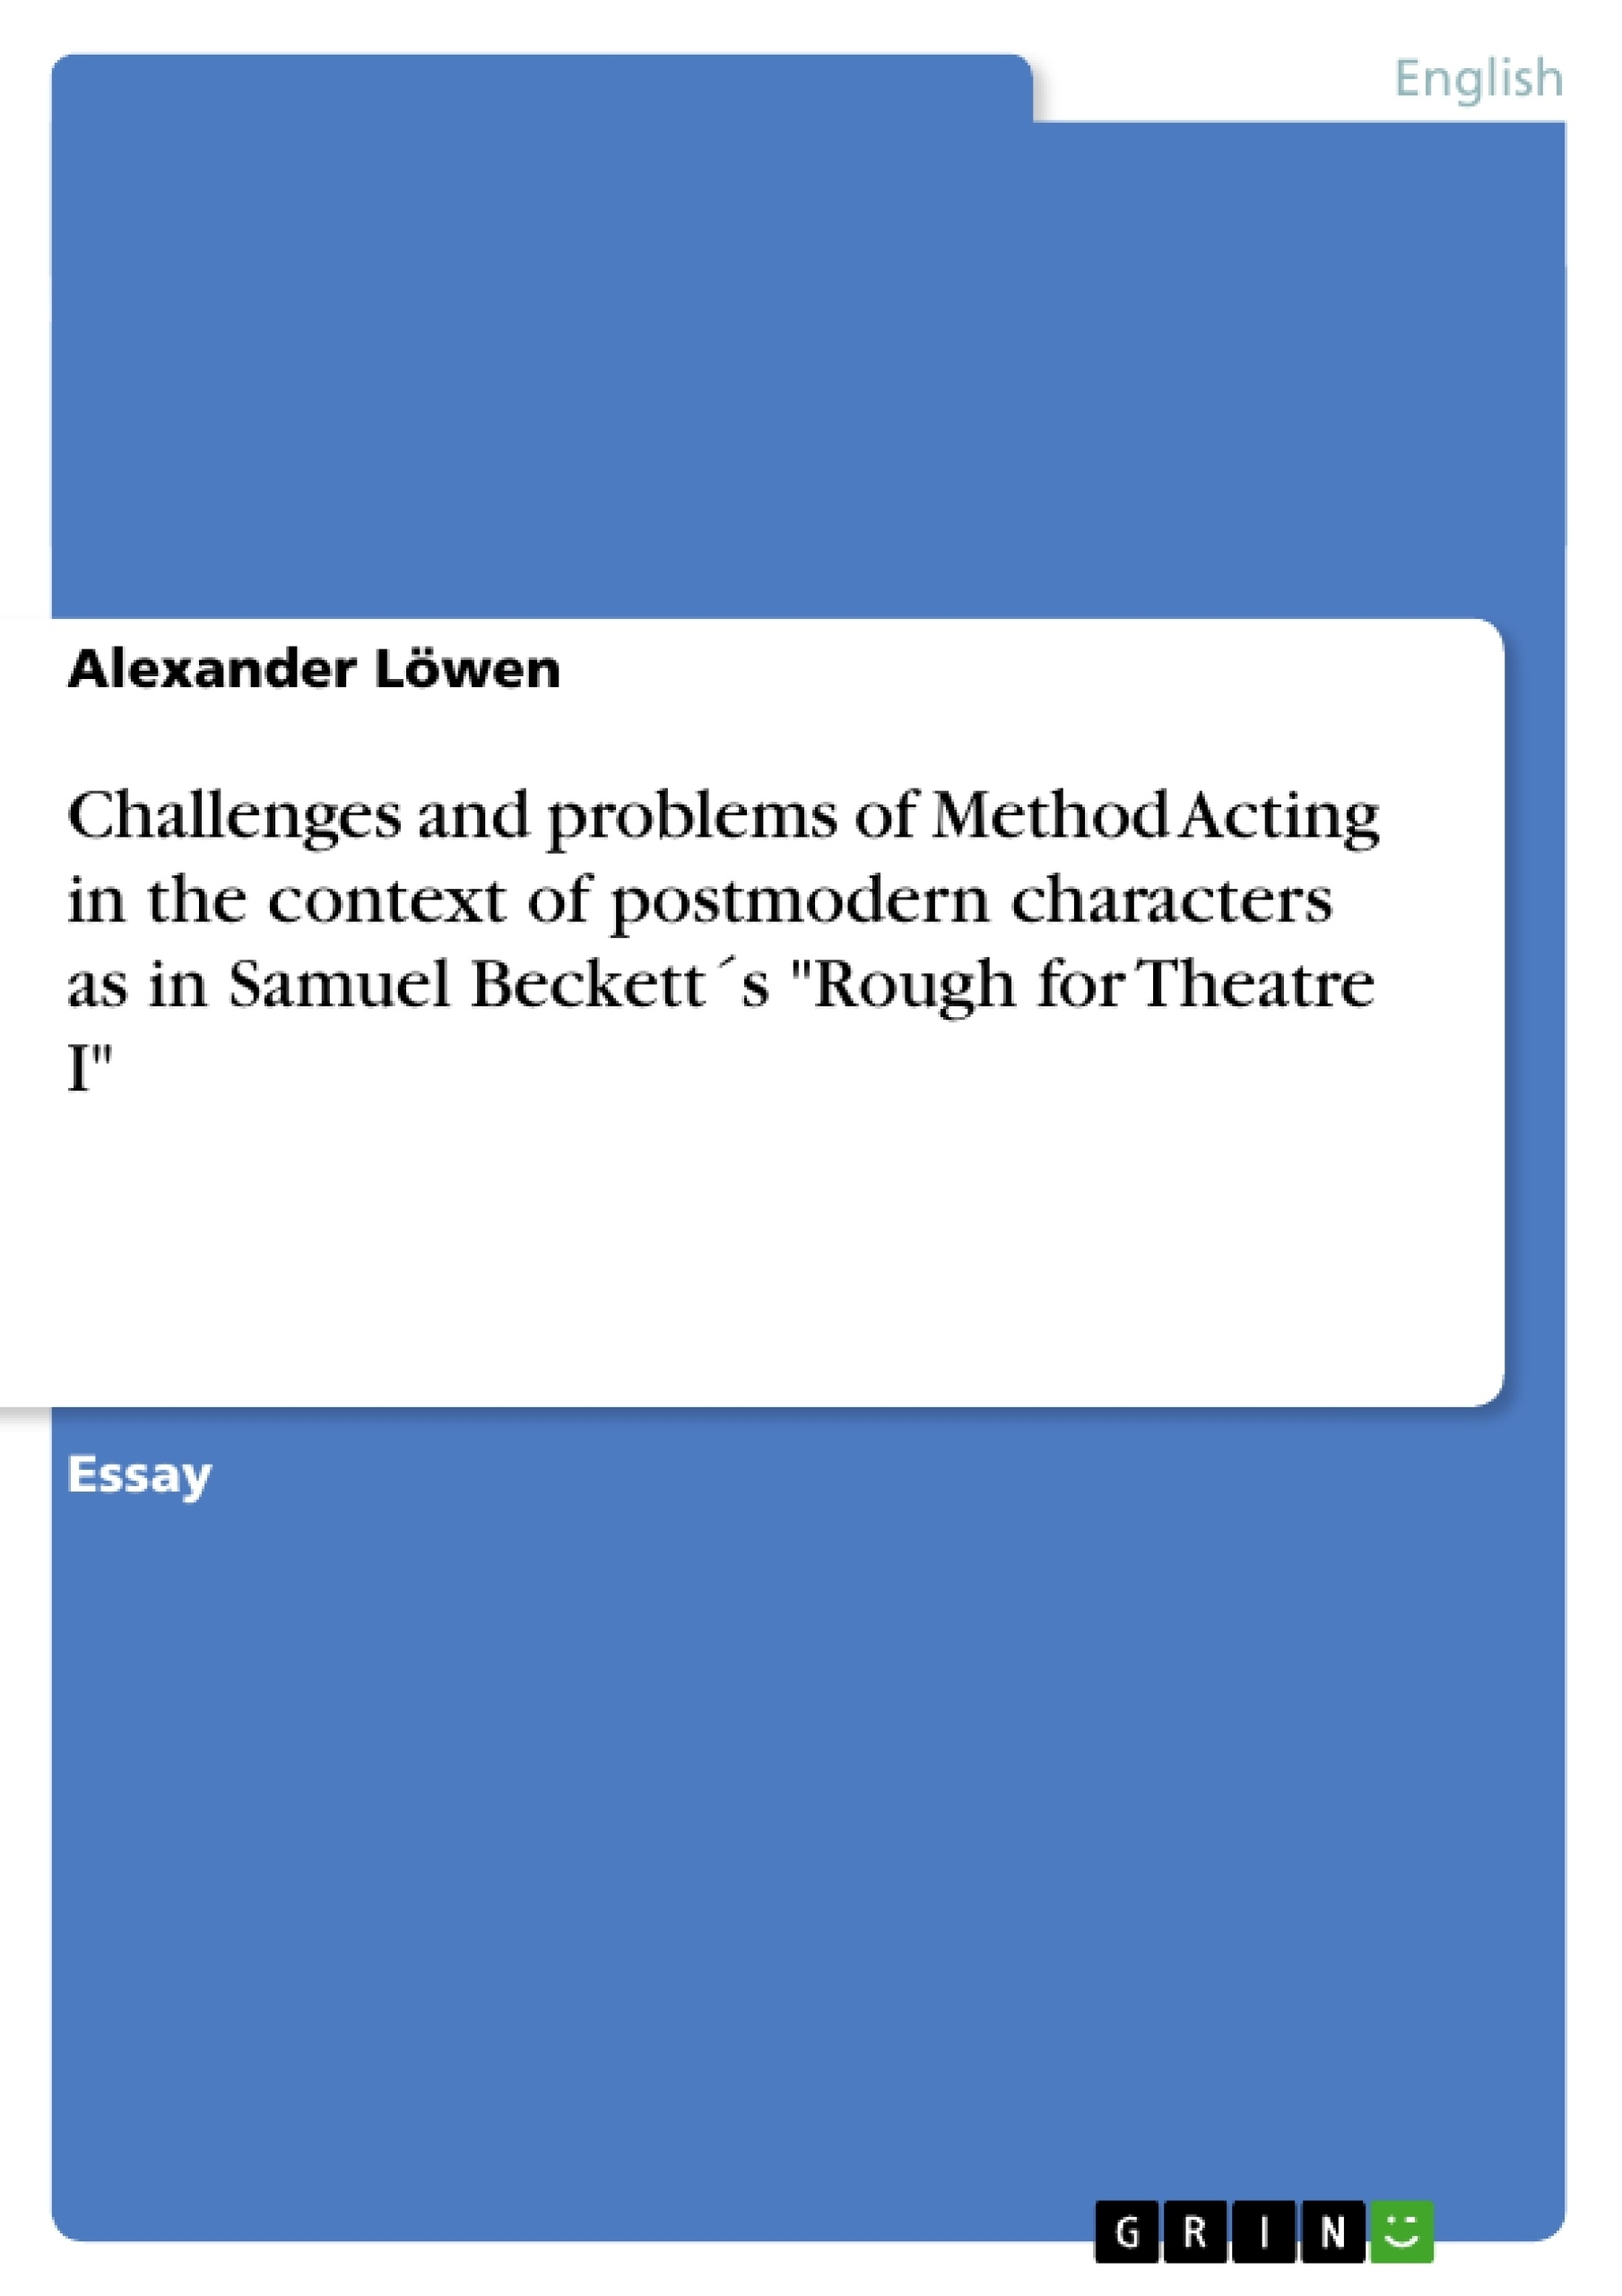 """Title: Challenges and problems of Method Acting in the context of postmodern characters as in Samuel Beckett´s """"Rough for Theatre I"""""""